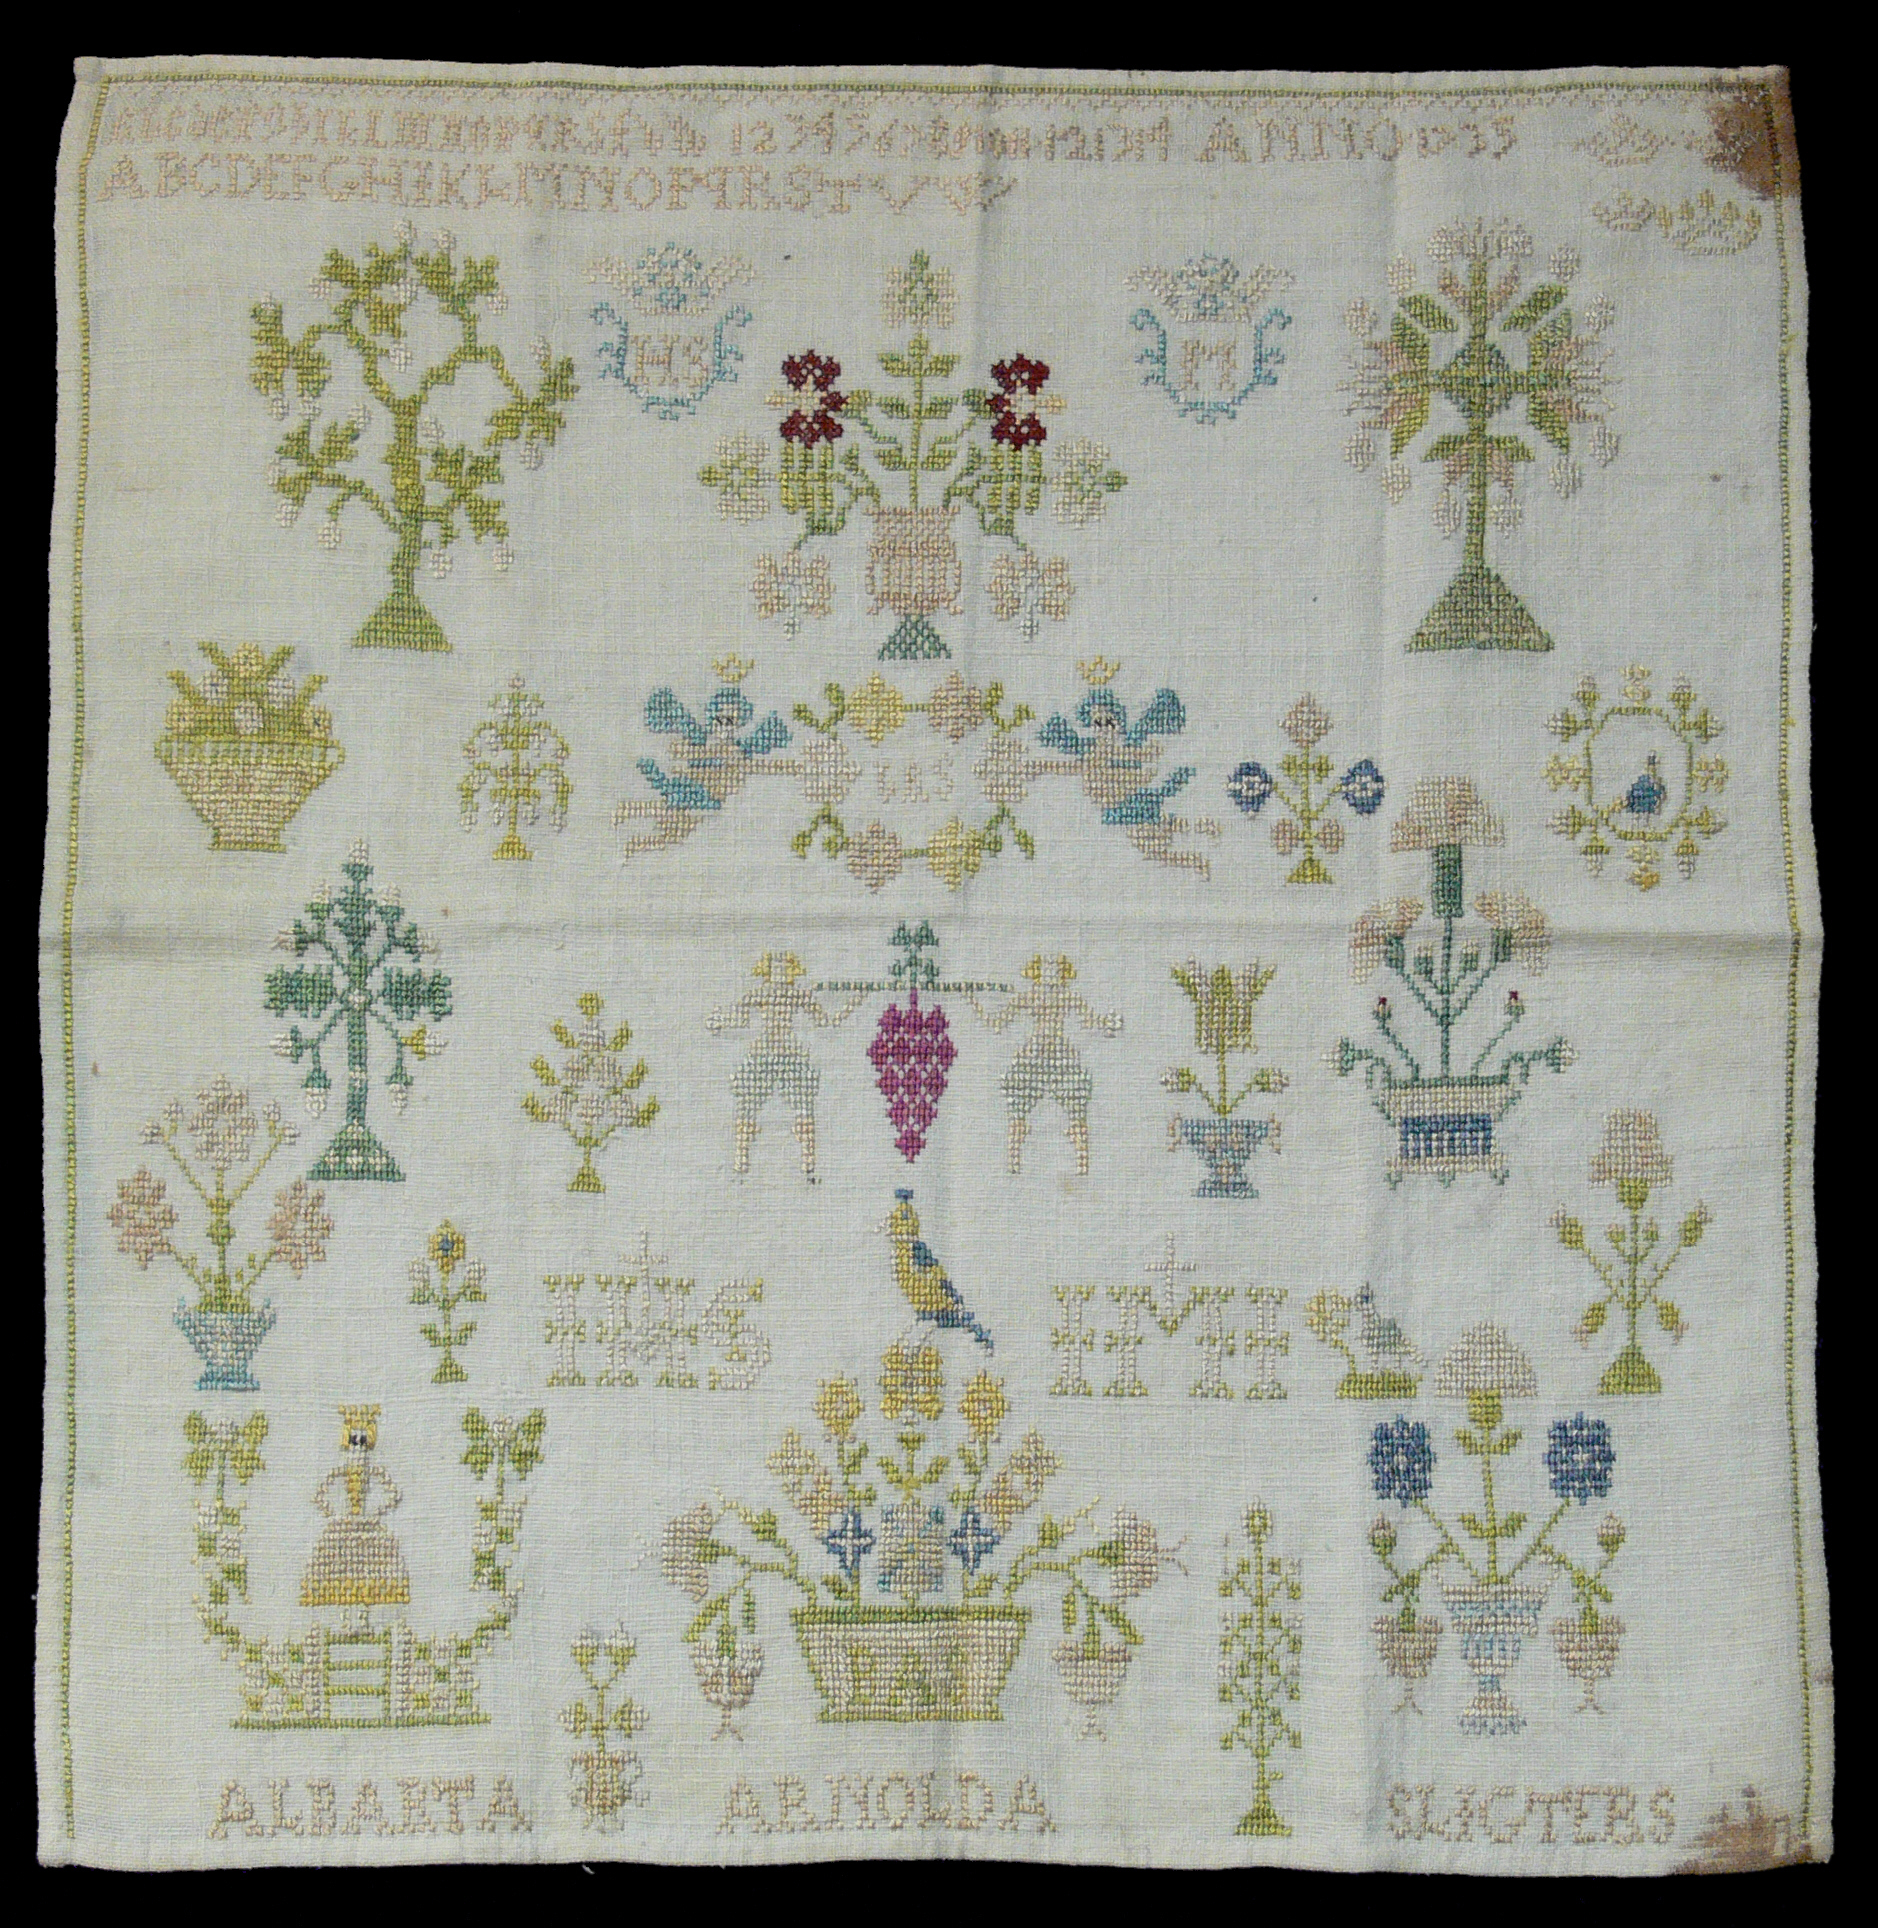 Stamped Embroidery Patterns Cross Stitch Wikipedia